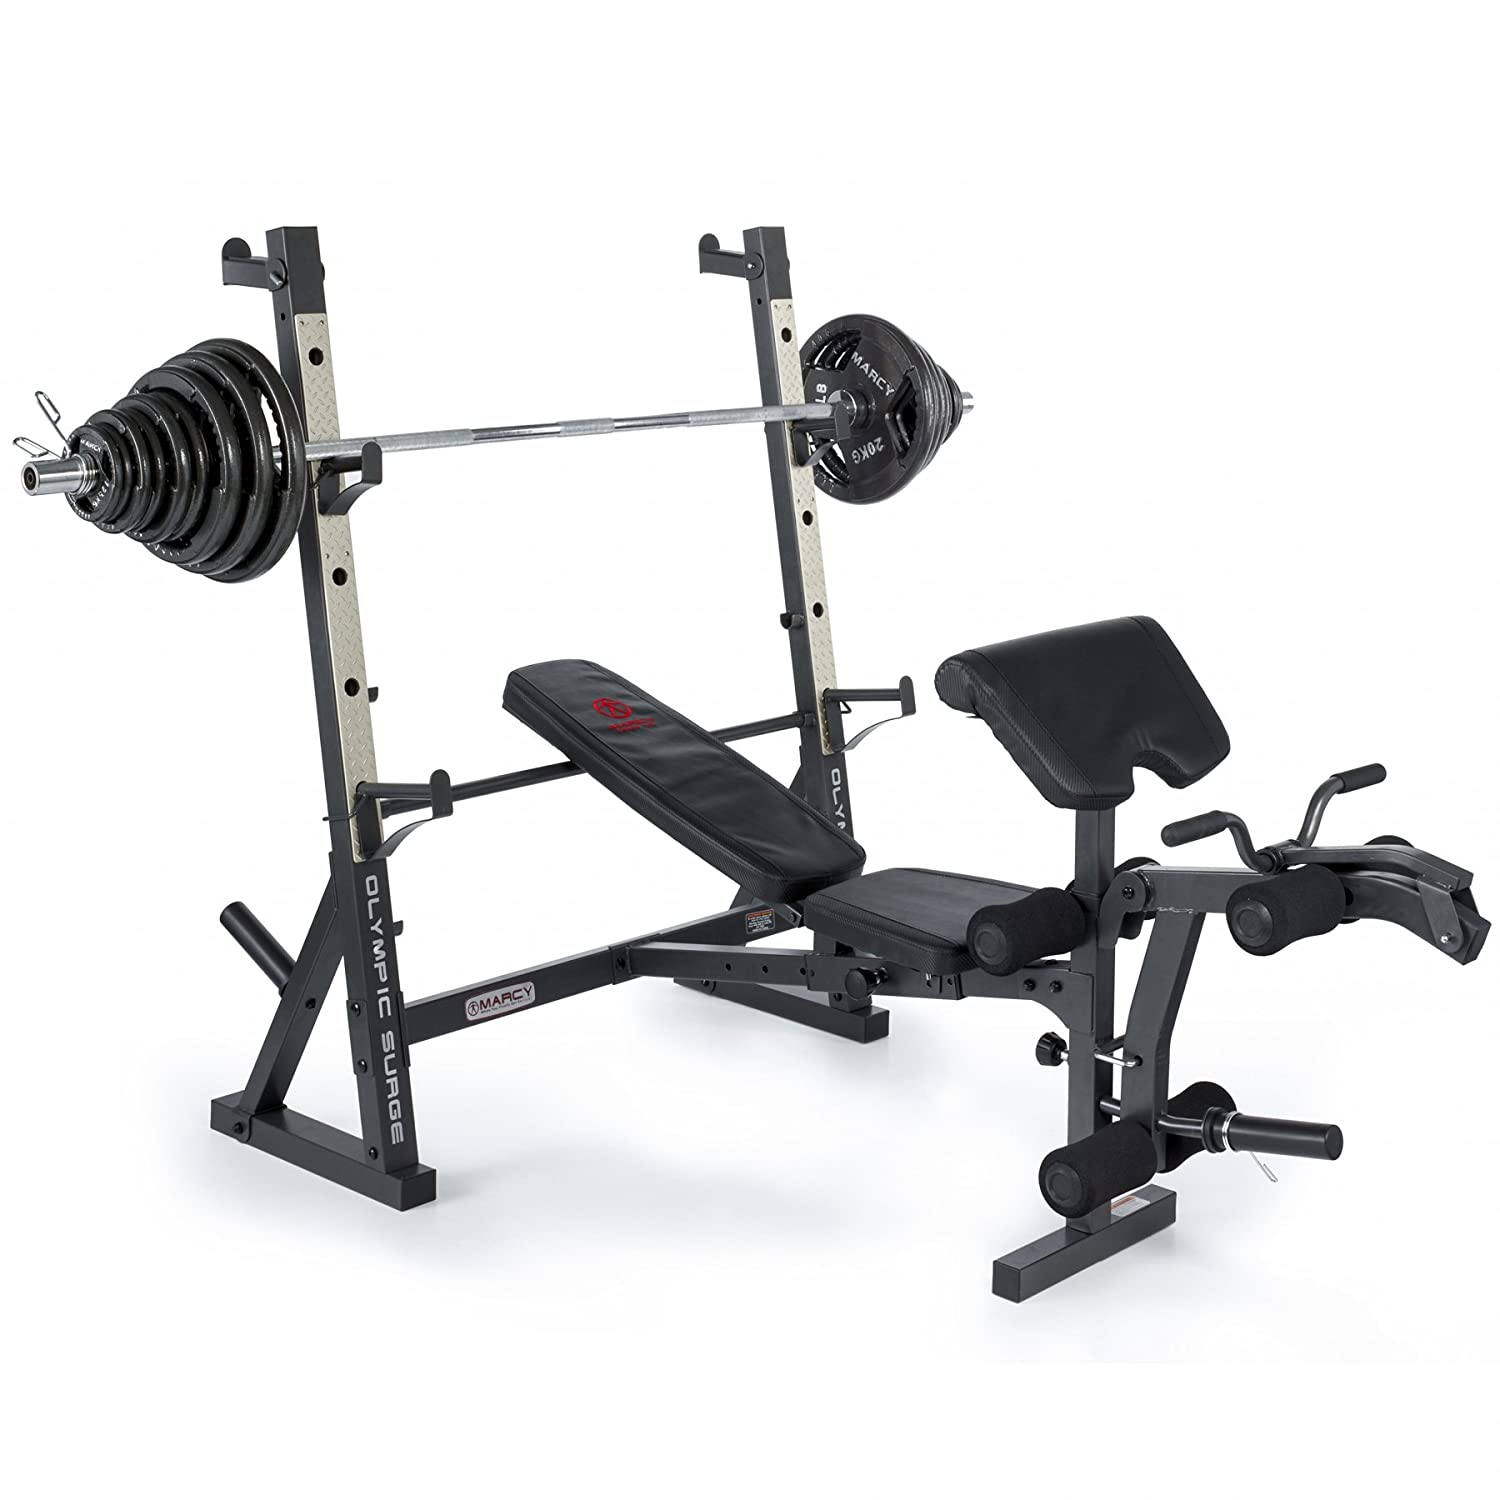 folding asp v sports weights weight ltd co fit strength training bench uk benches c beny with p